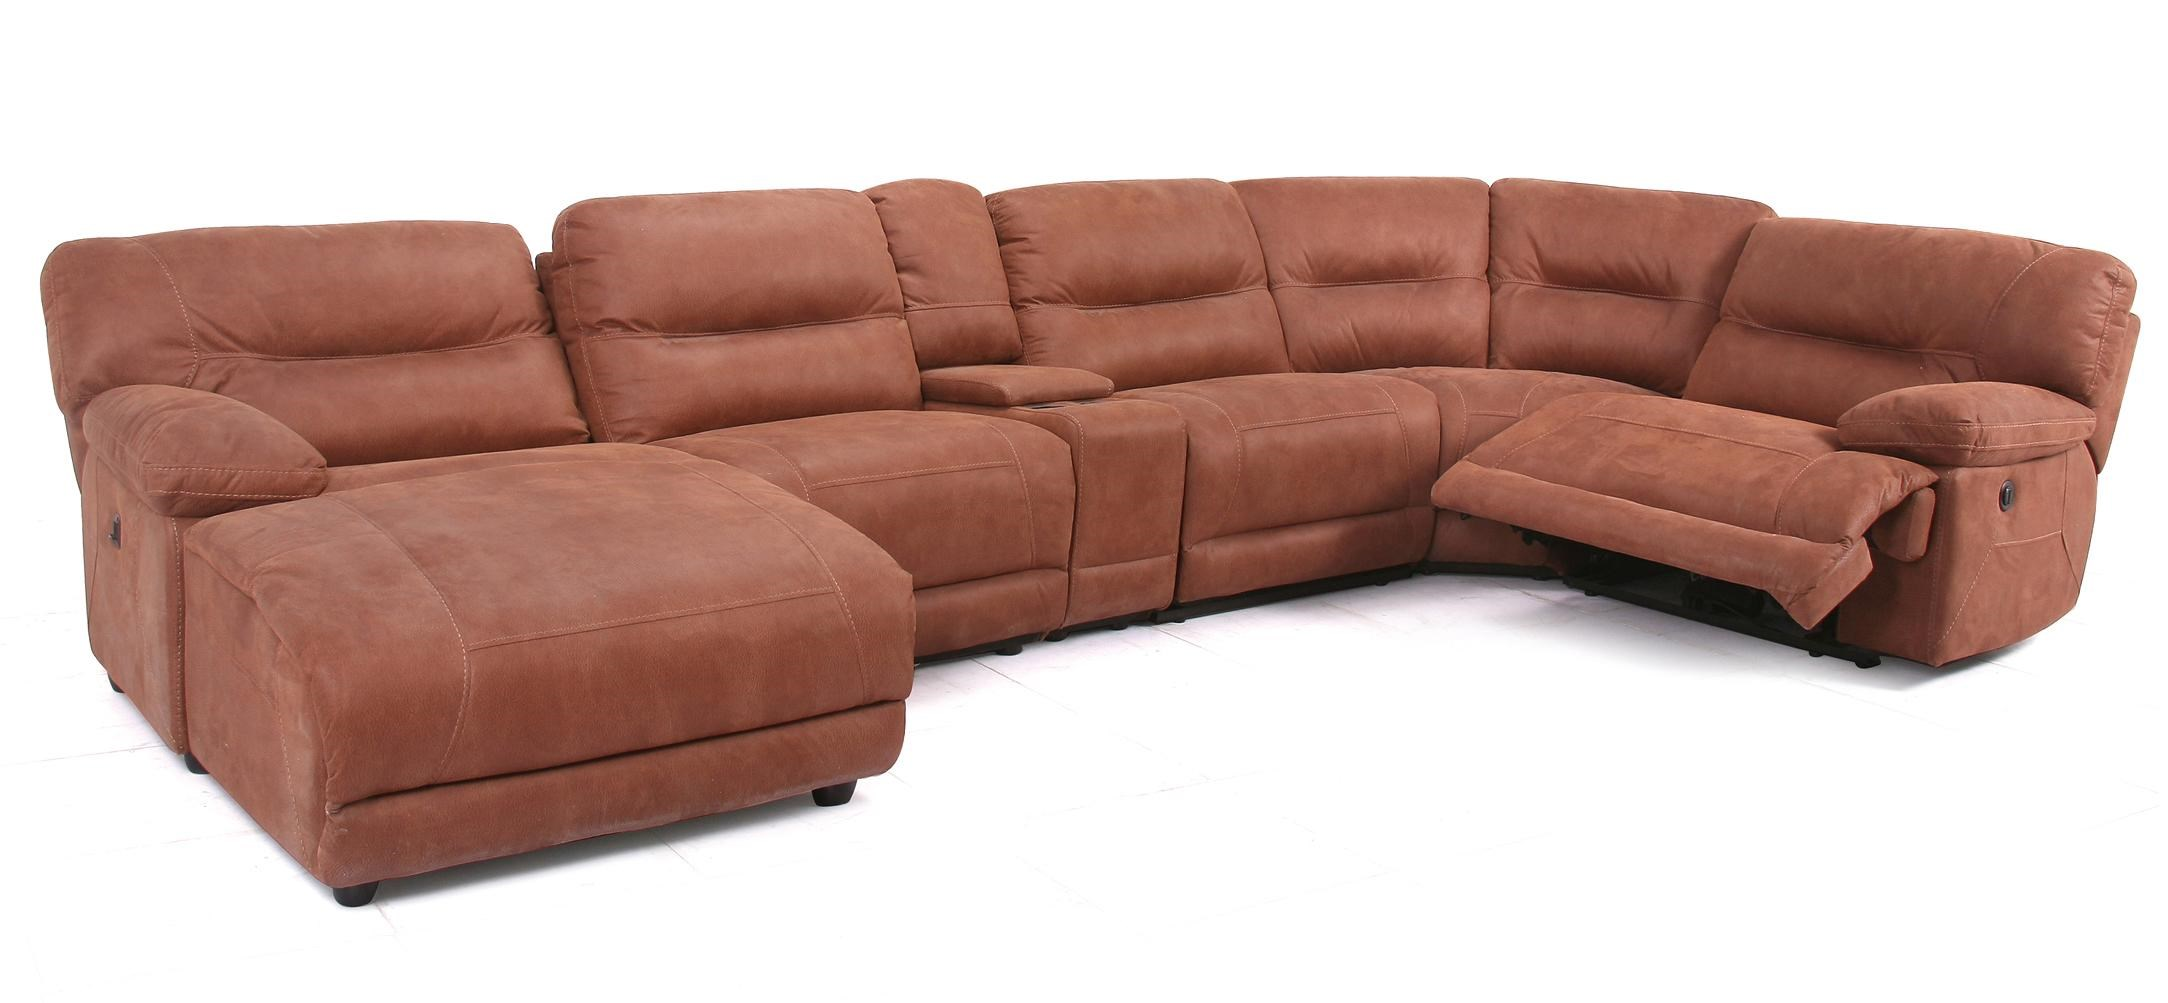 Marvelous Casual Reclining Sectional With Chaise U0026 Console